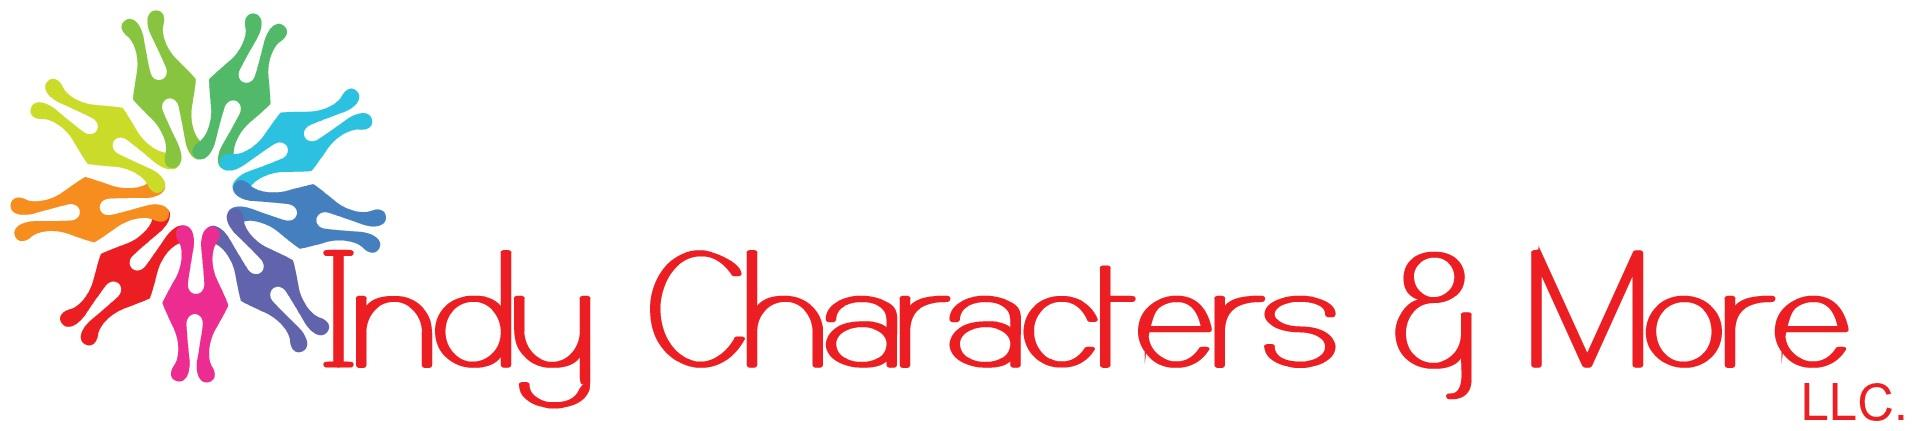 Indy Characters & More LLC.